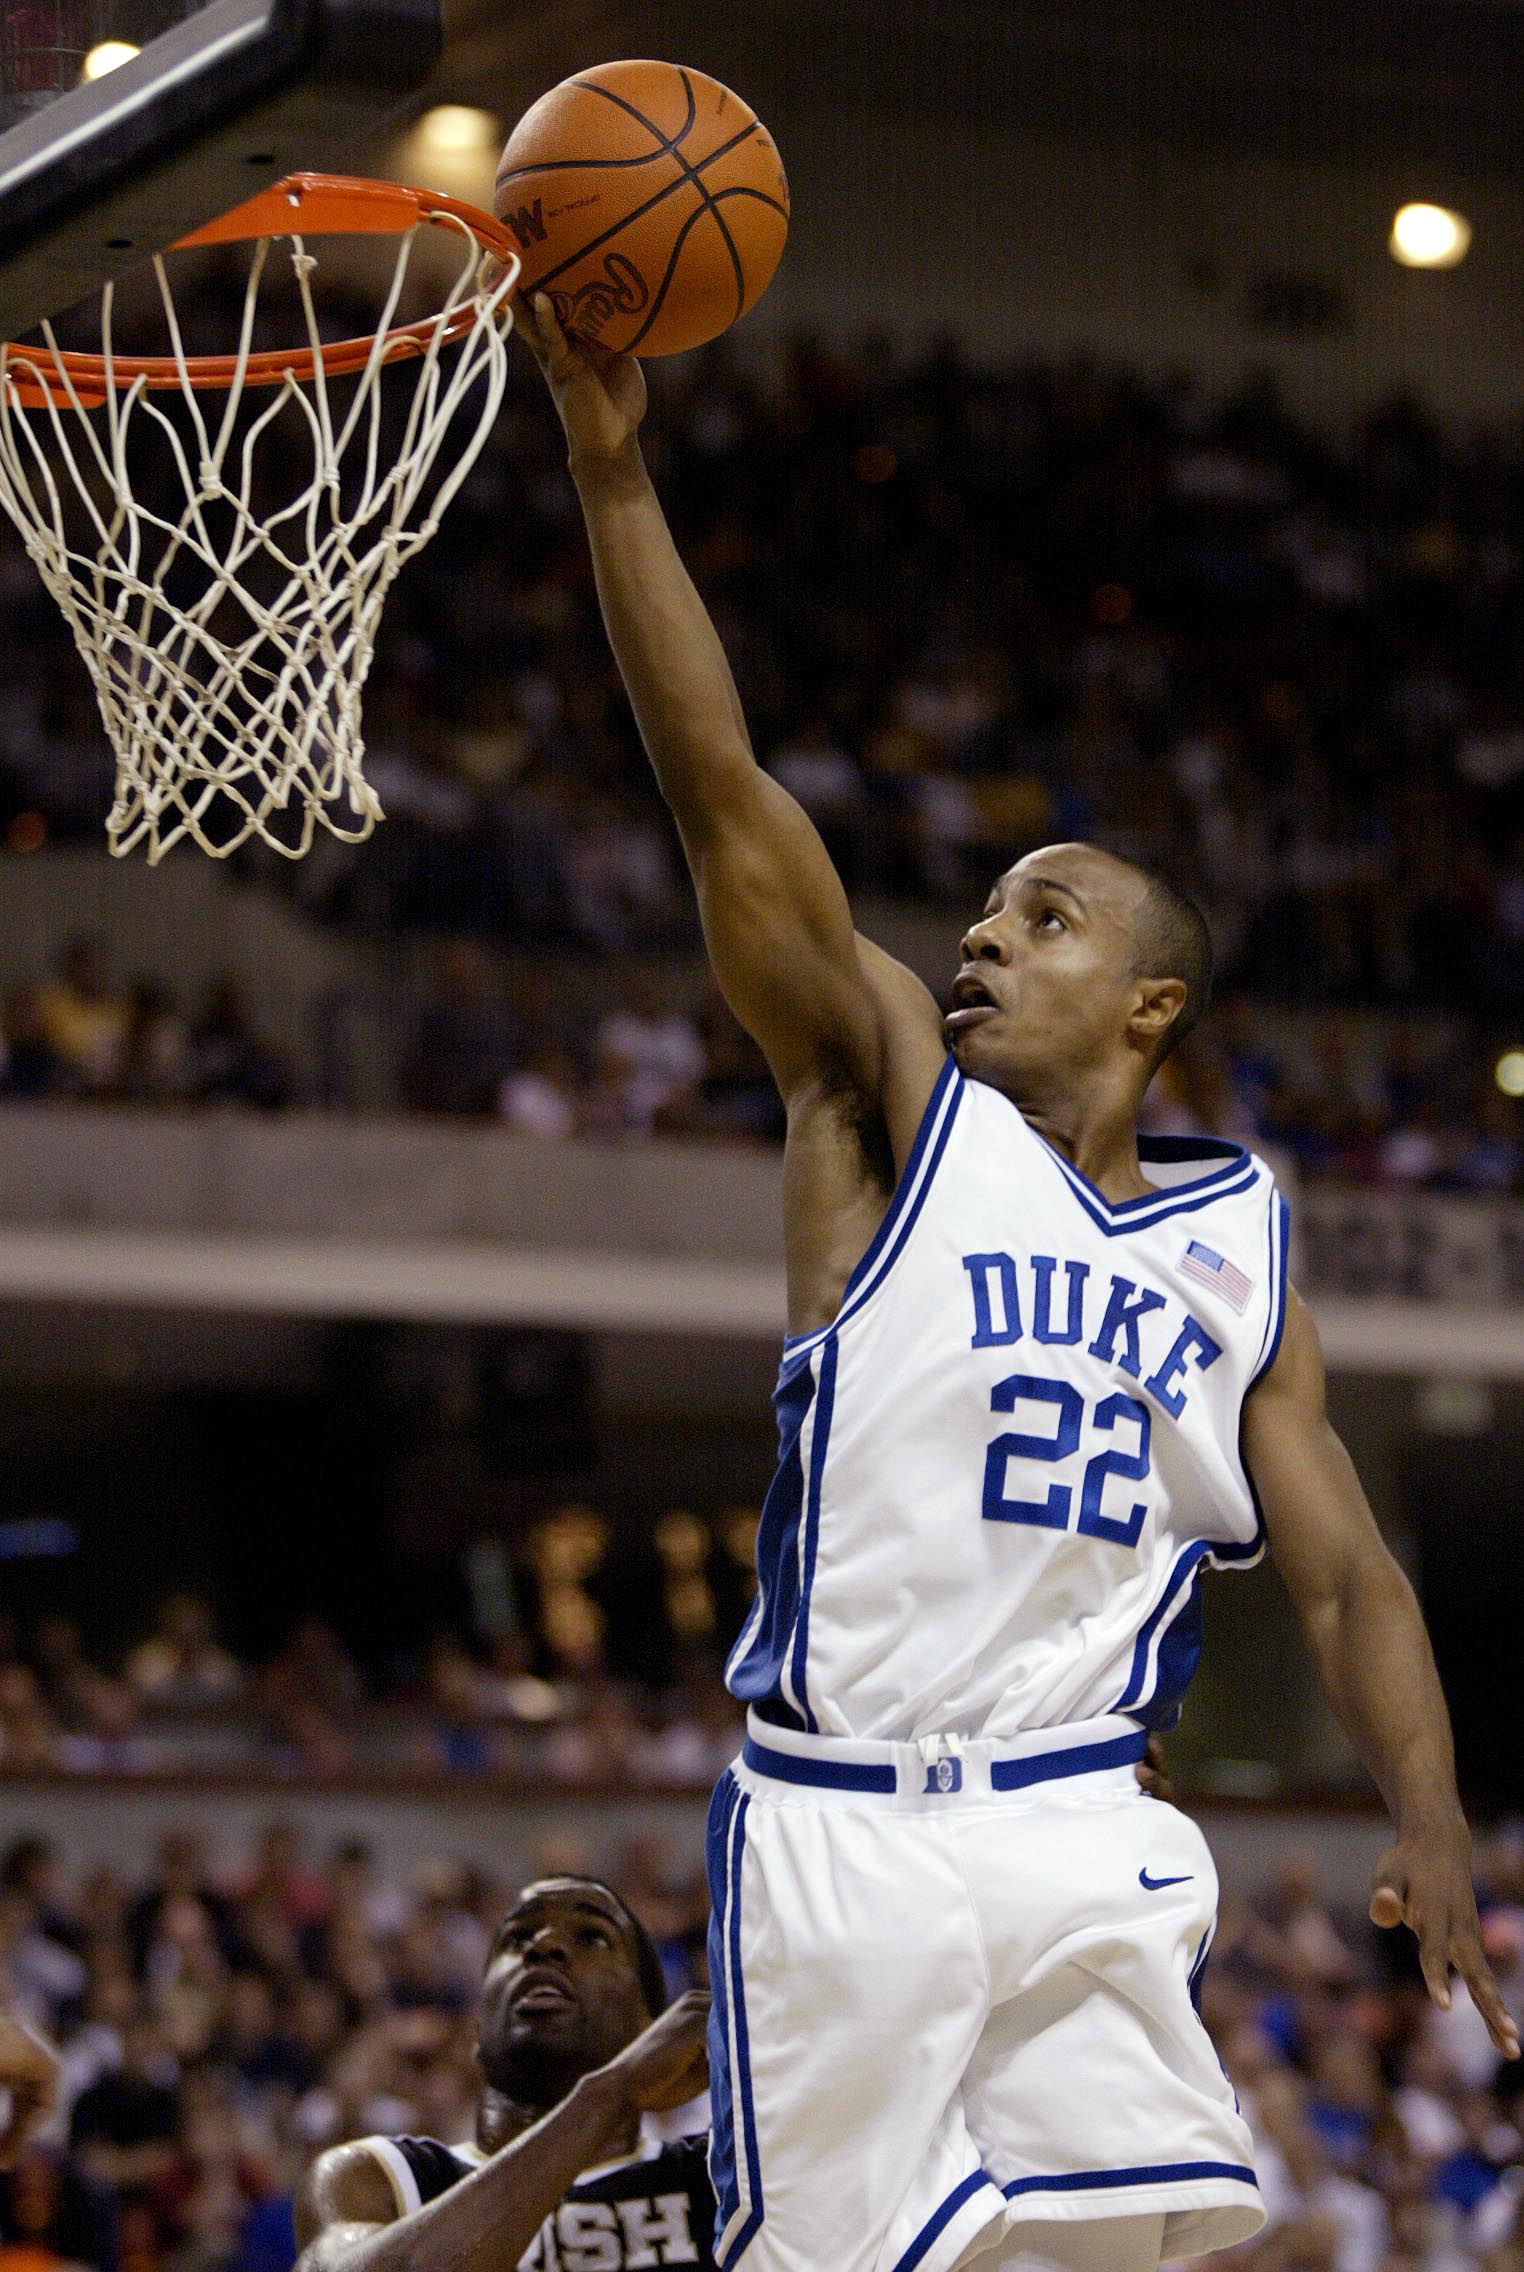 16 Mar 2002:  Jason Williams #22 of Duke drives to the basket during their game with Notre Dame during the NCAA 2nd round basketball game at the Bi-Lo Center in Greenville, South Carolina. DIGITAL IMAGEMandatory Credit: Craig Jones/Getty Images